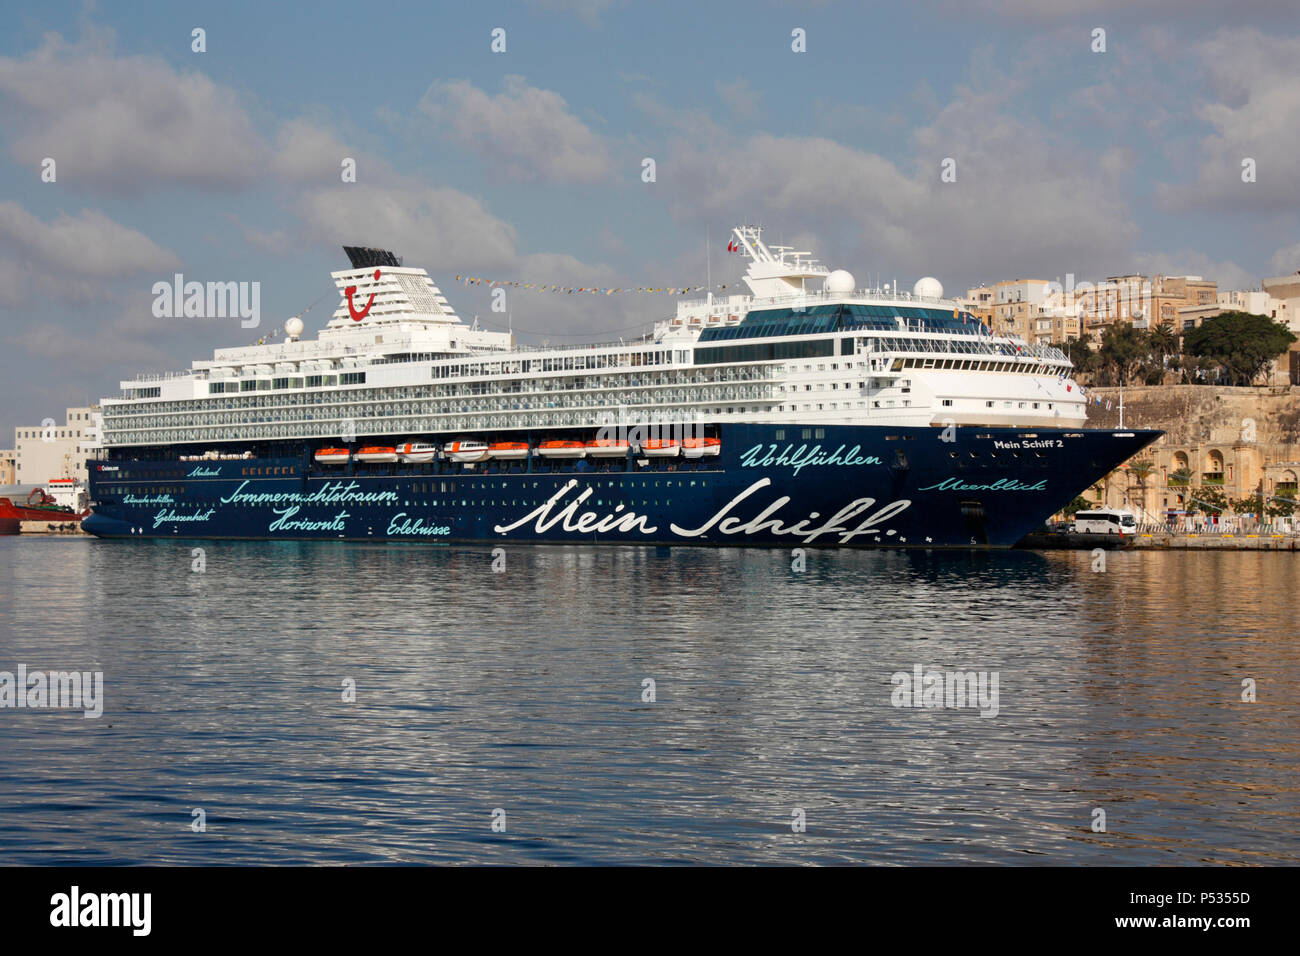 The TUI Cruises cruise ship Mein Schiff 2 in Malta's Grand Harbour. Travel and tourism in the Mediterranean Sea. - Stock Image